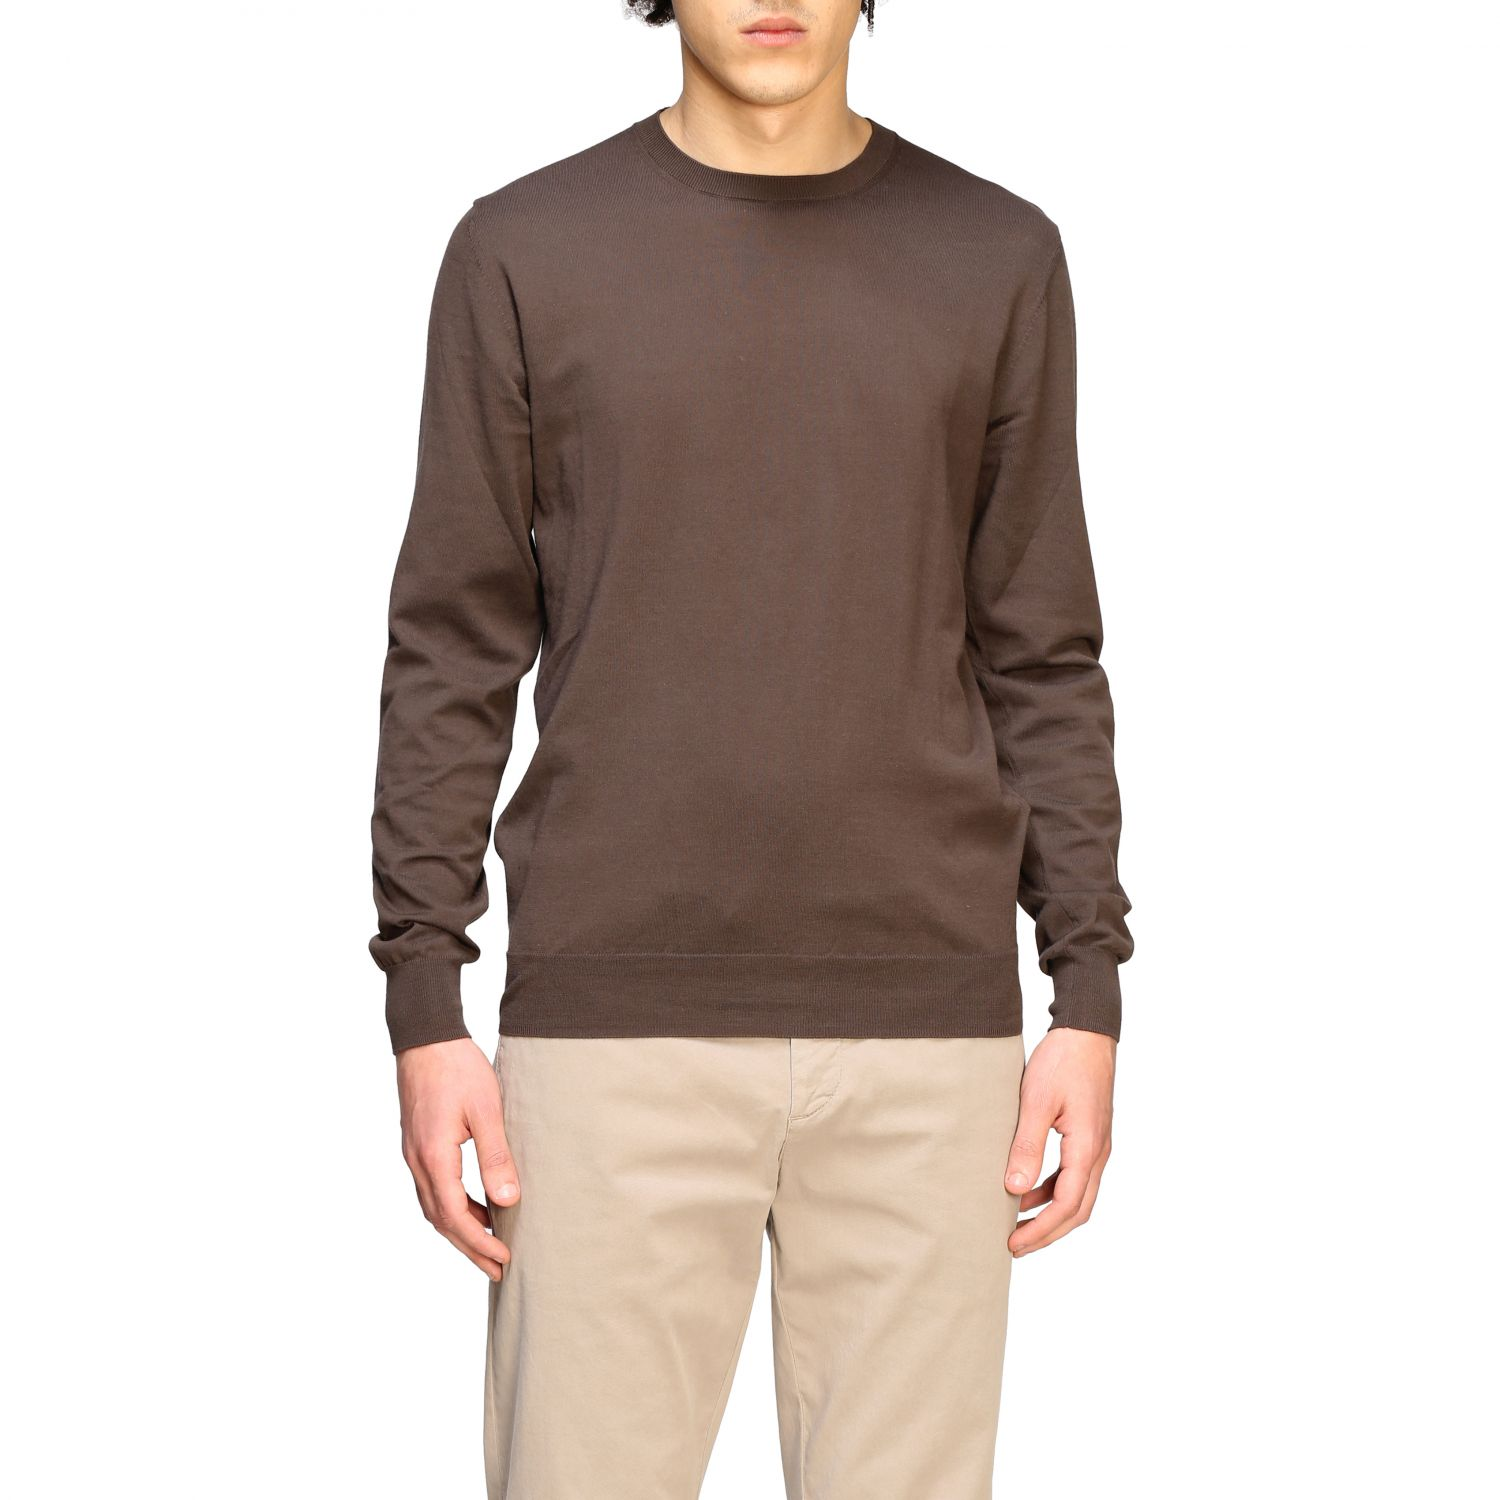 Pull homme Paolo Pecora brun 1